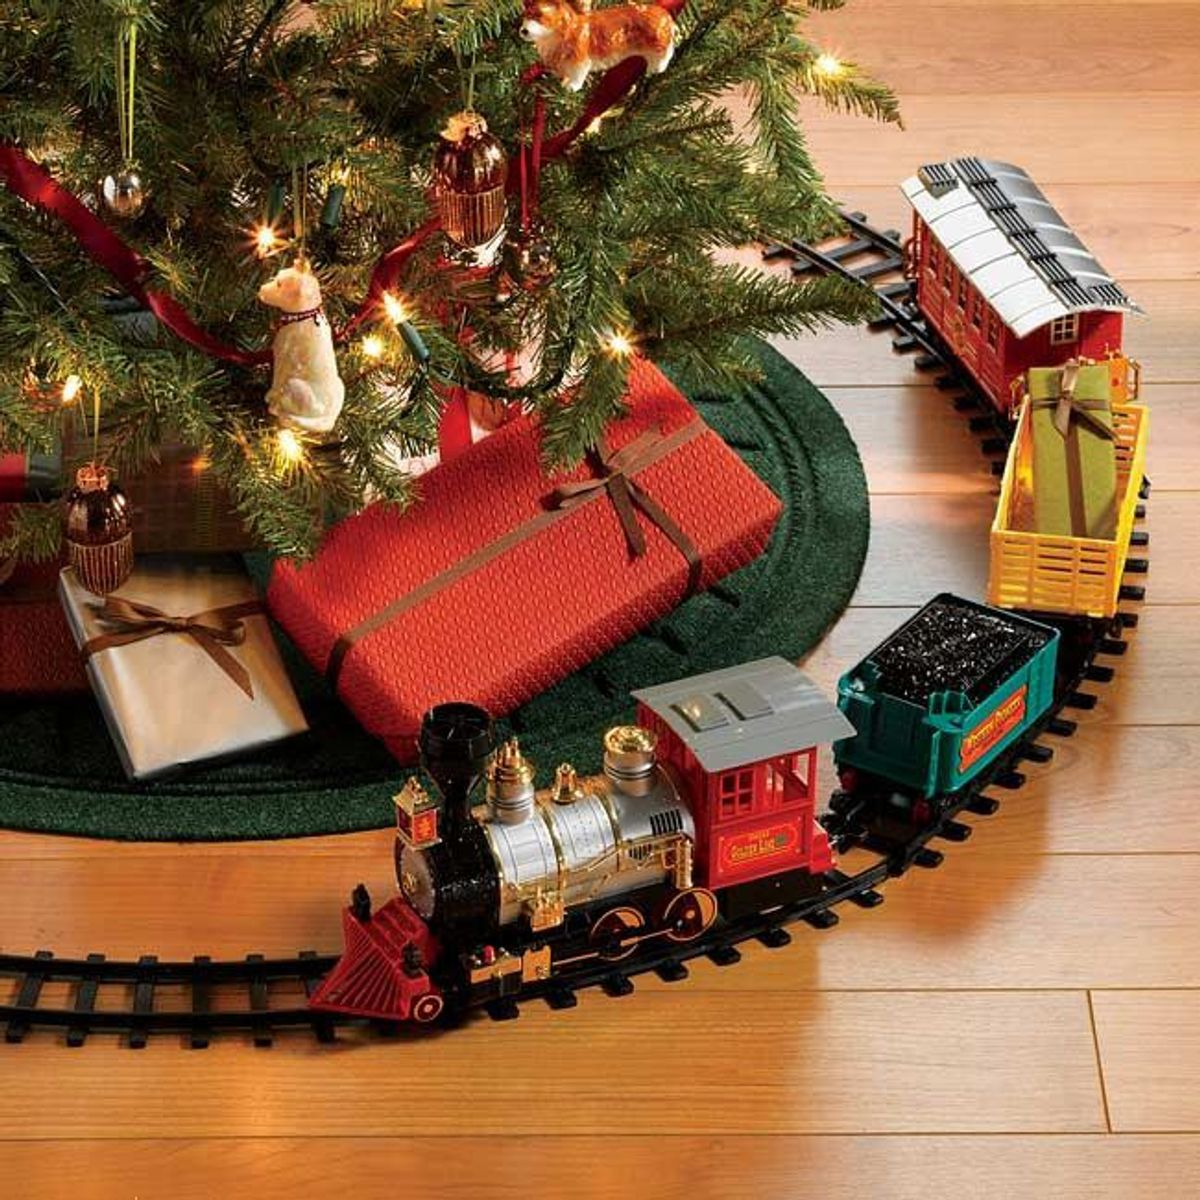 5 Christmas Toys That Many Will Remember